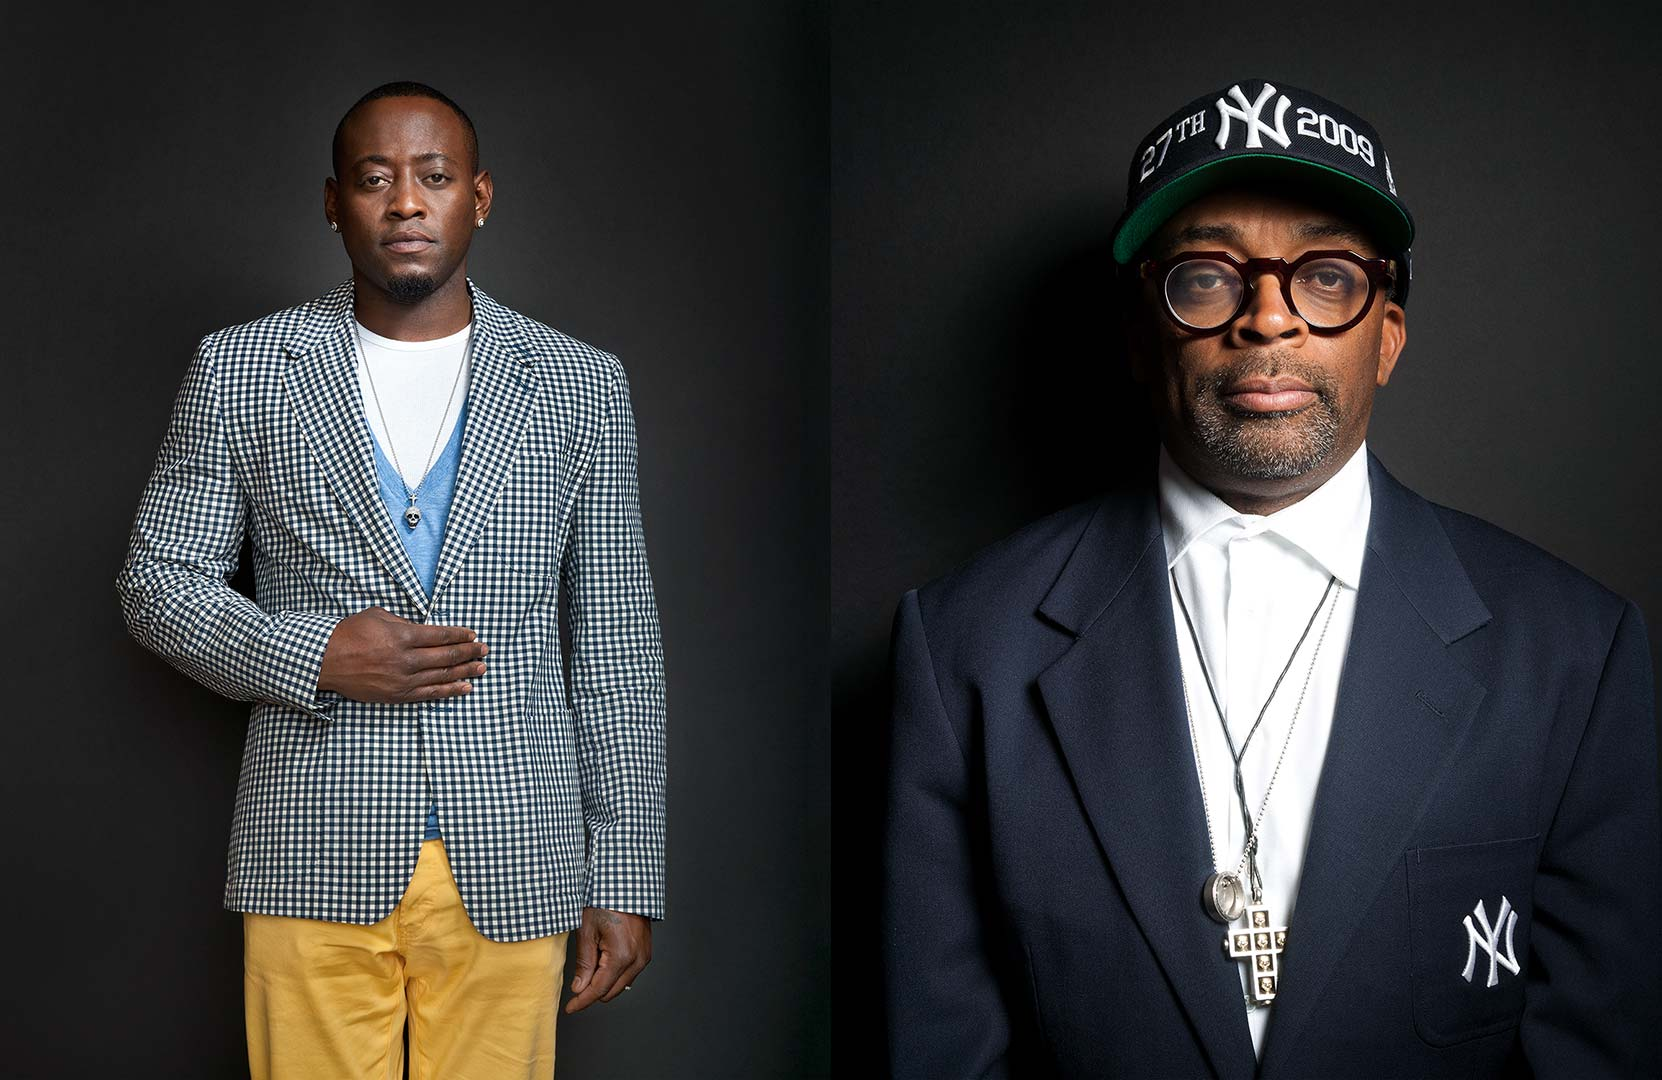 Celebrity portrait photography of Omar Epps and Spike Lee